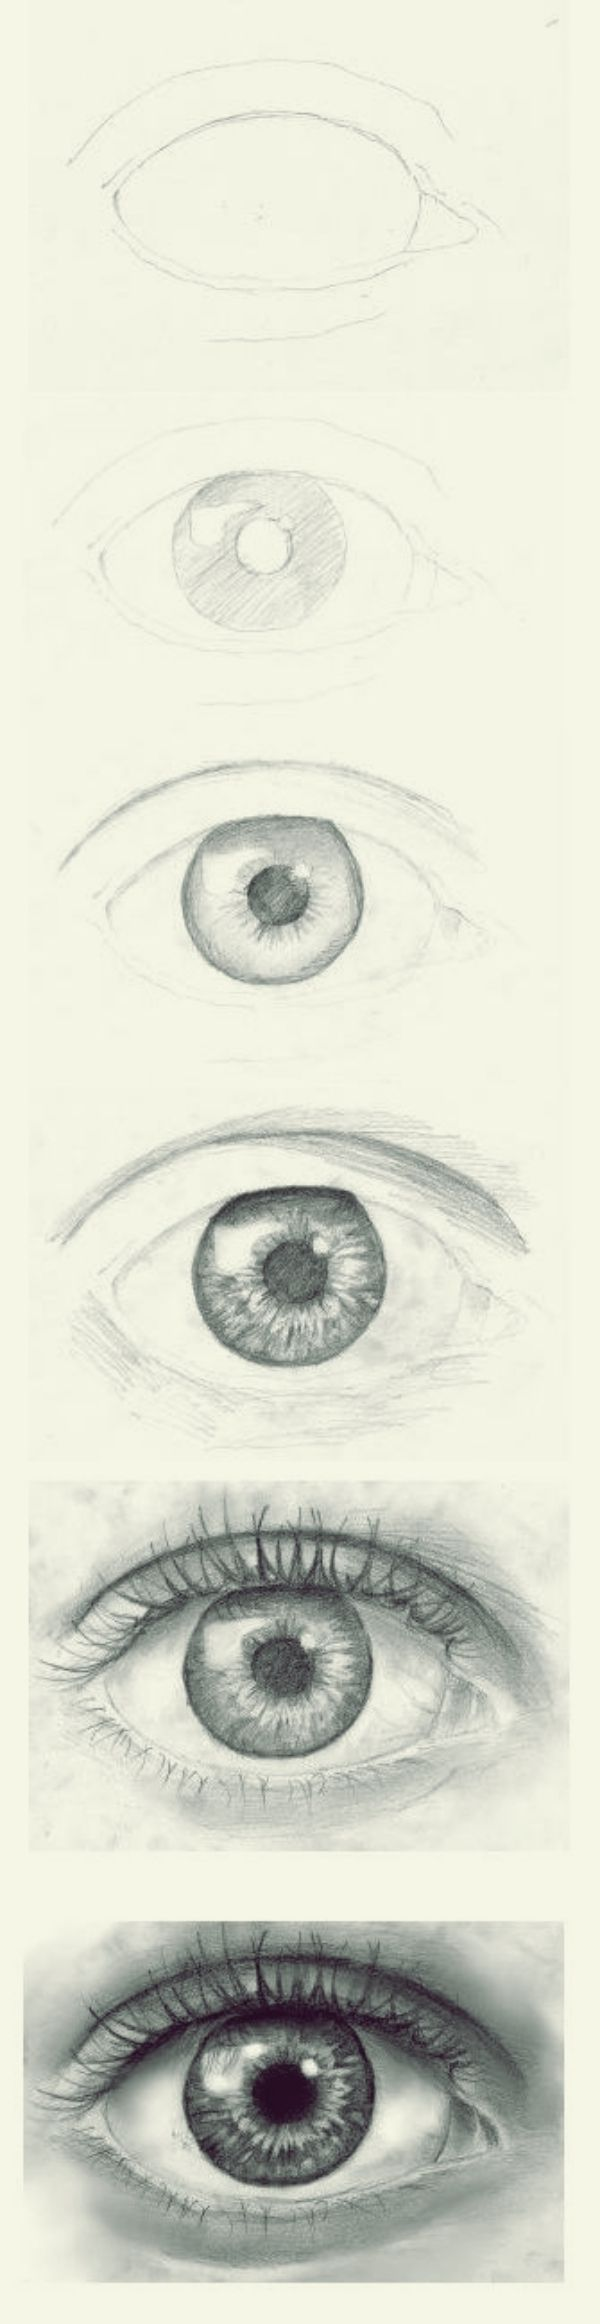 Drawing techniques drawing tips painting drawing easy eye drawing eyeball drawing